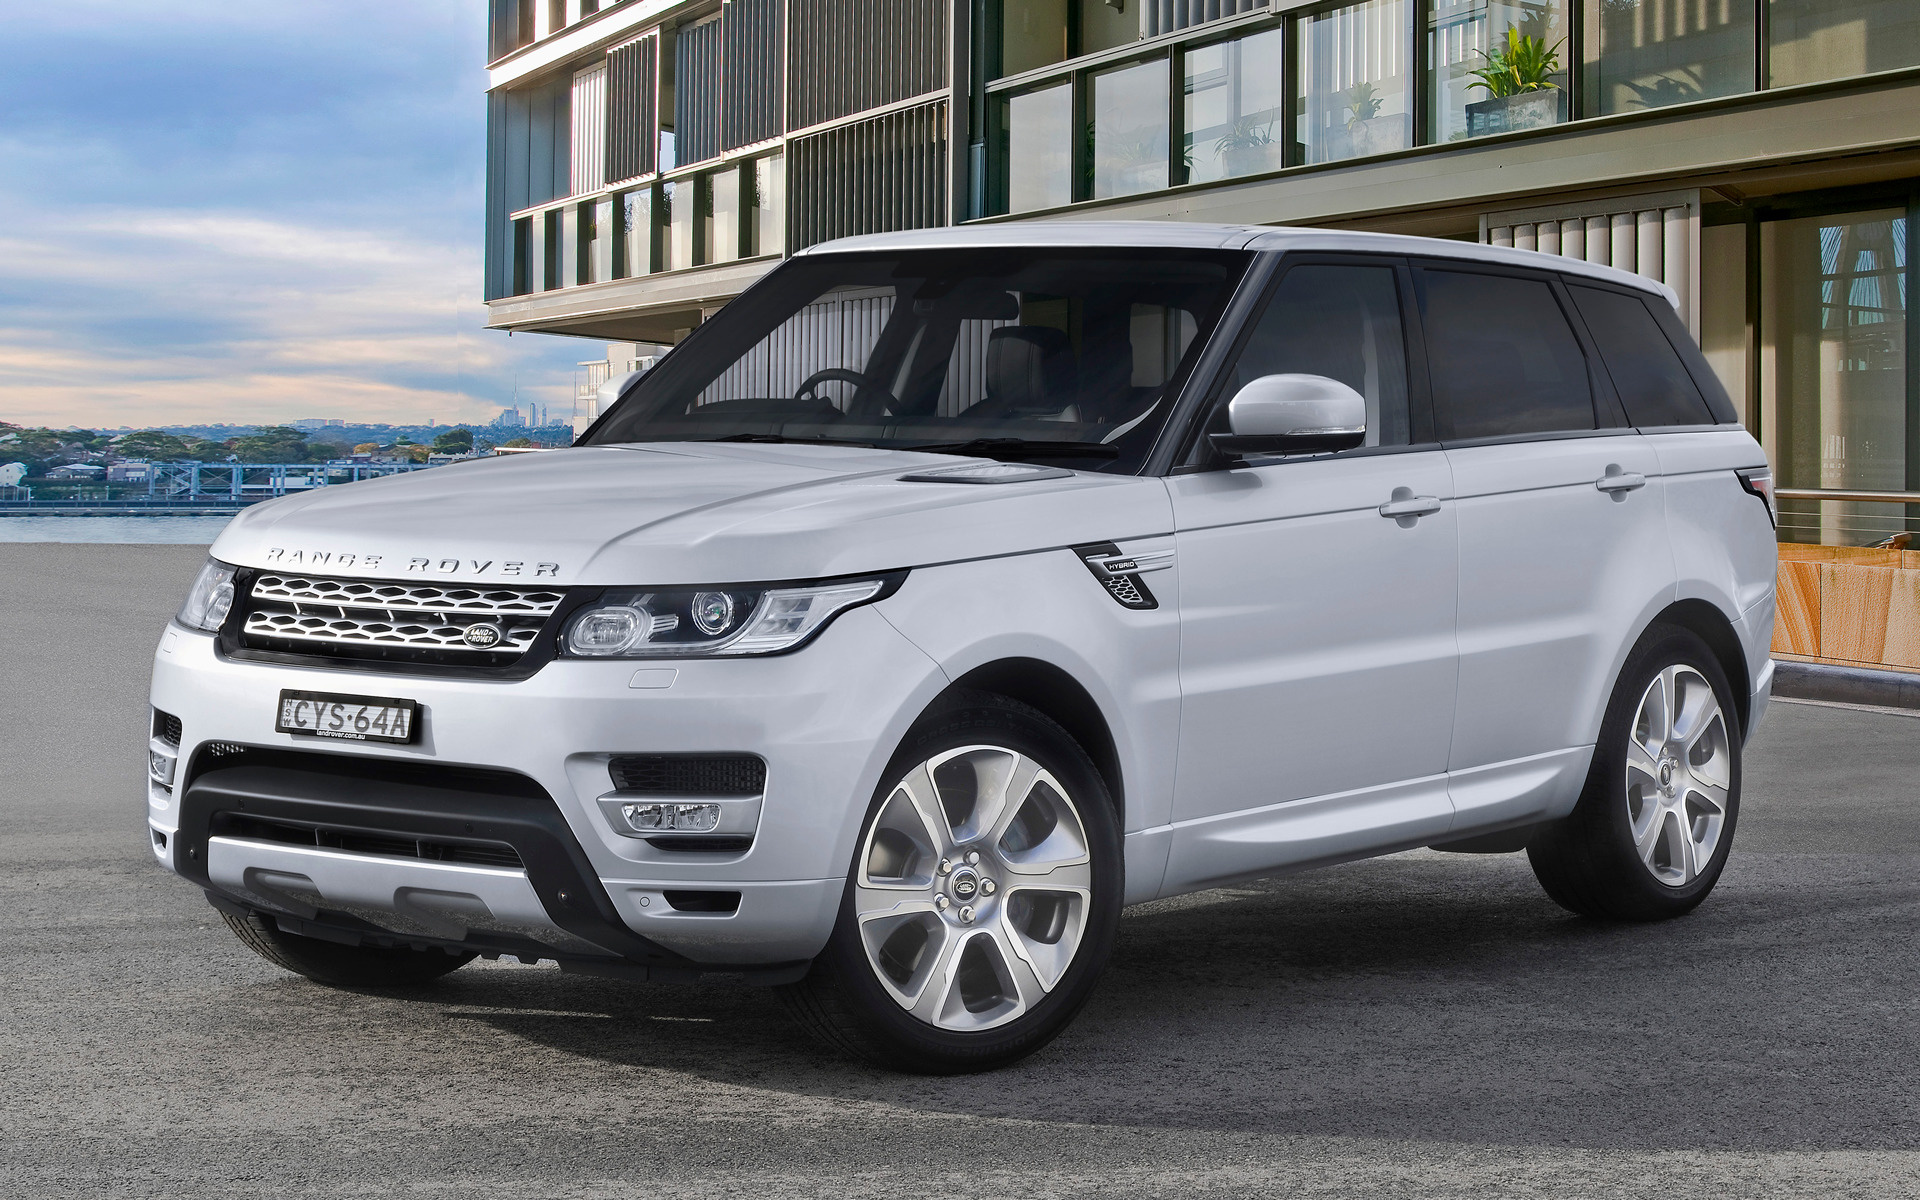 range rover sport hybrid autobiography 2015 au wallpapers and hd images car pixel. Black Bedroom Furniture Sets. Home Design Ideas